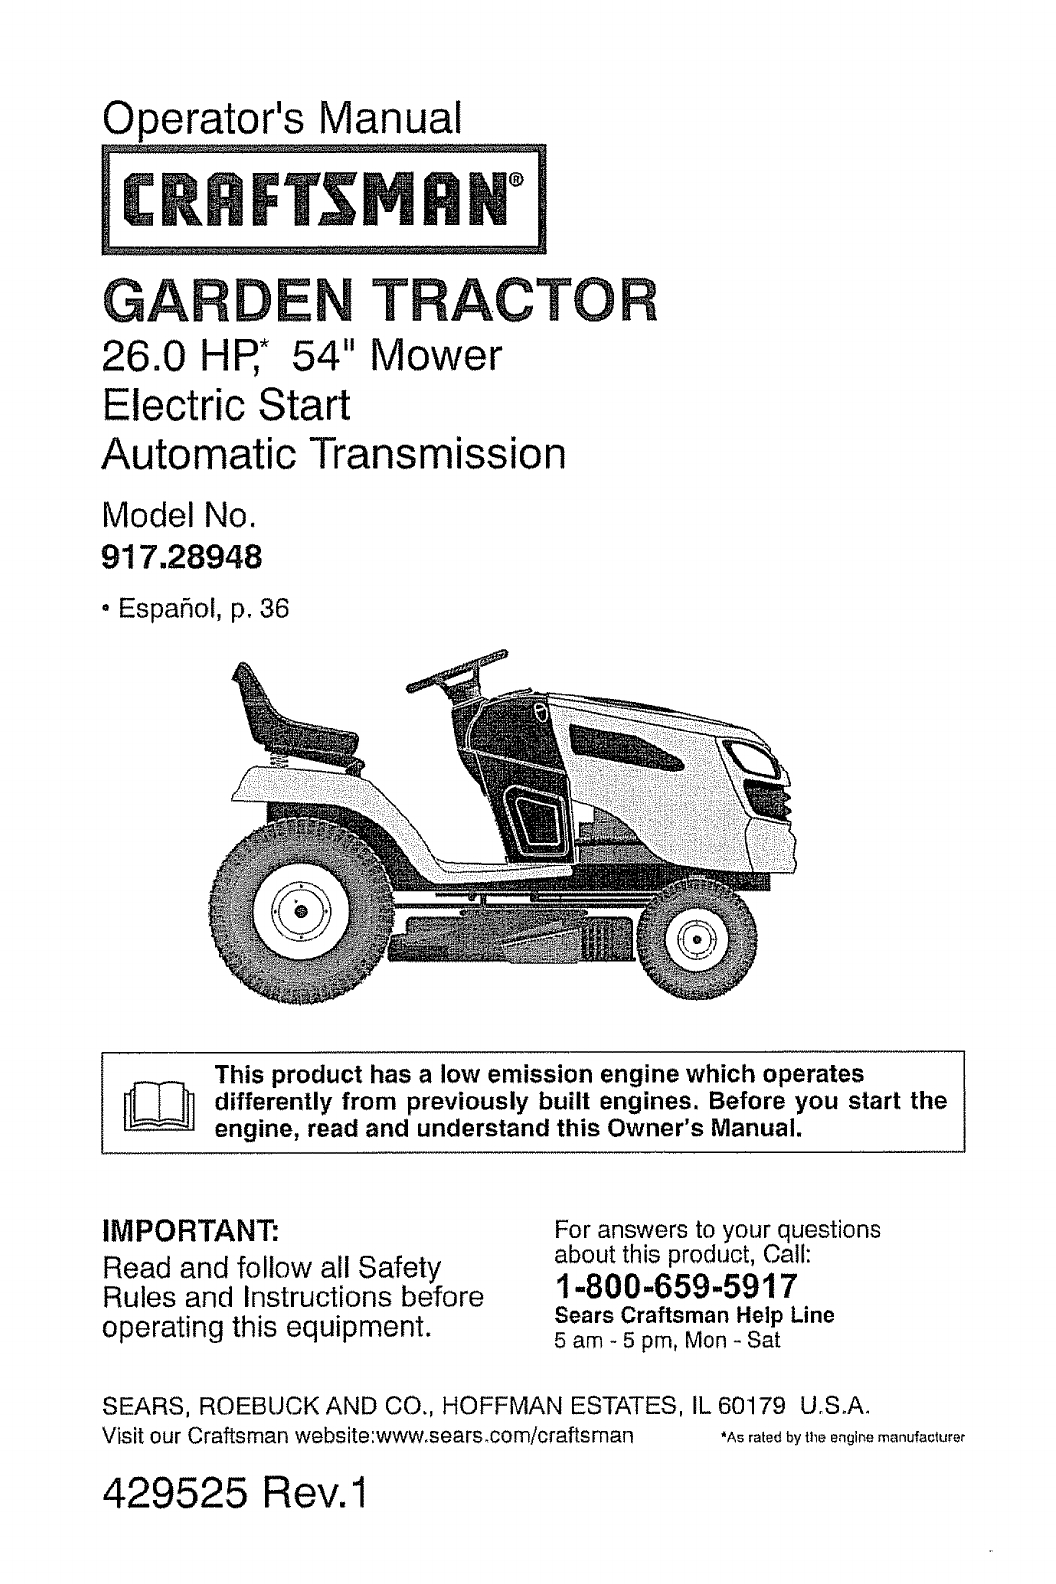 Craftsman Mower Part Riding Lawn Tractor : Craftsman riding lawn mower parts diagram automotive